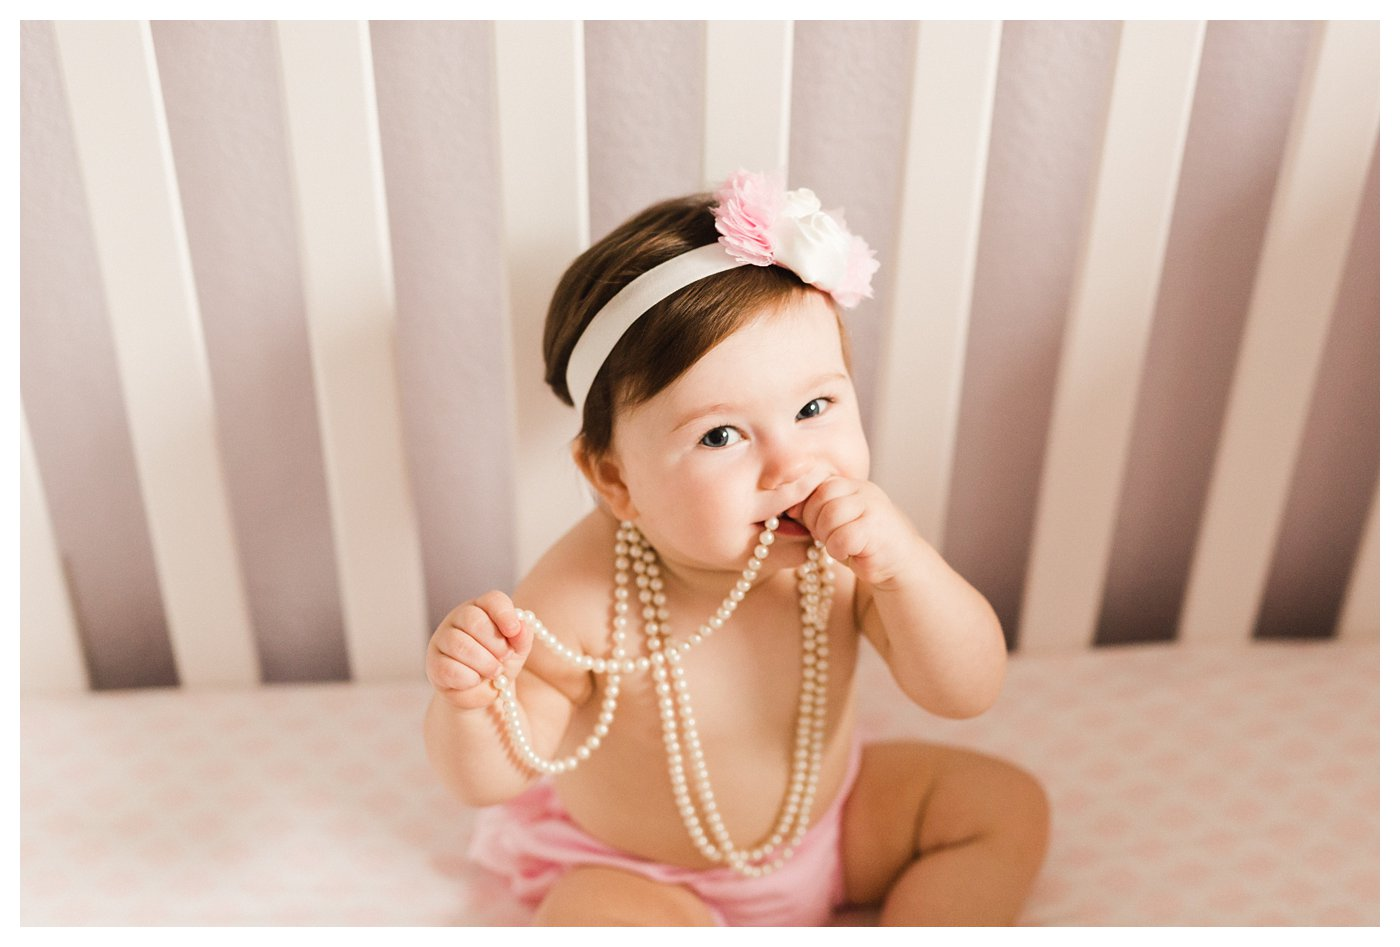 Pink and Pearls Photo Session for 1 Year Old